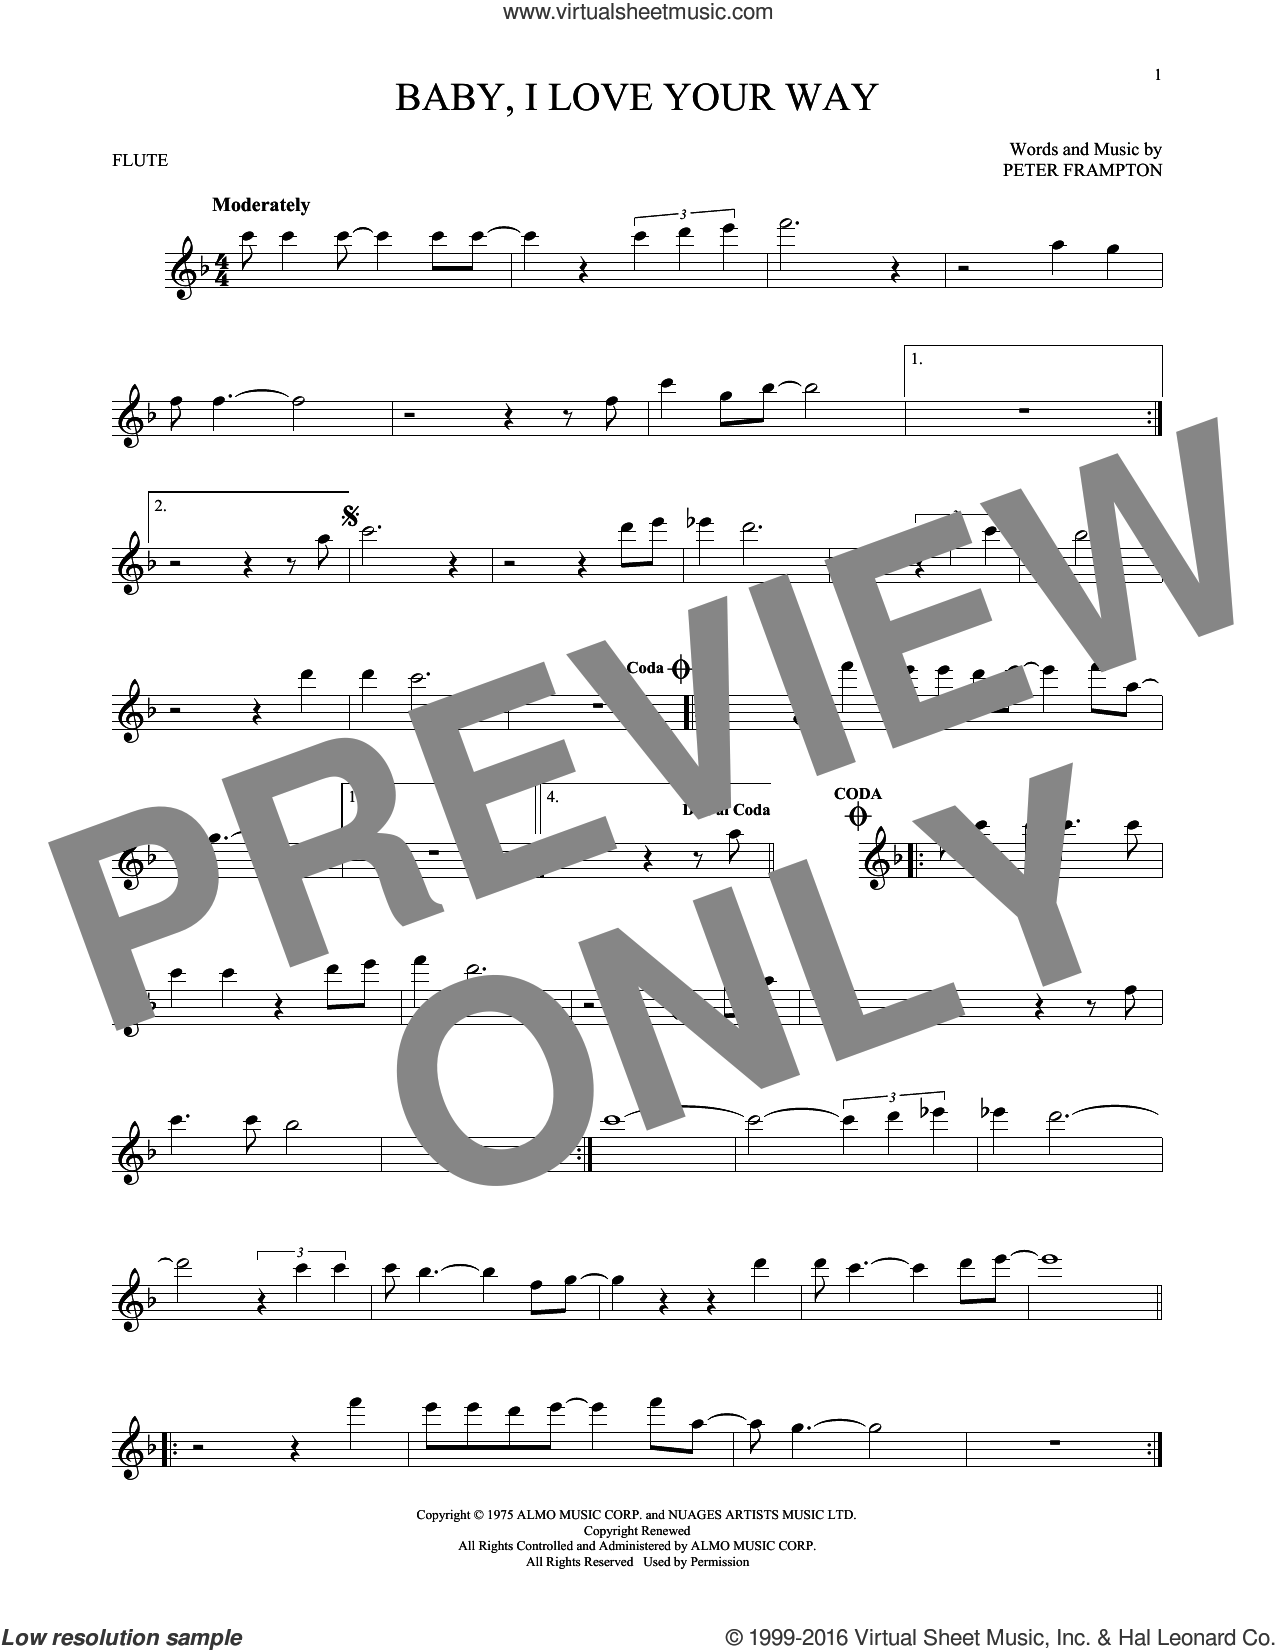 Baby, I Love Your Way sheet music for flute solo by Peter Frampton